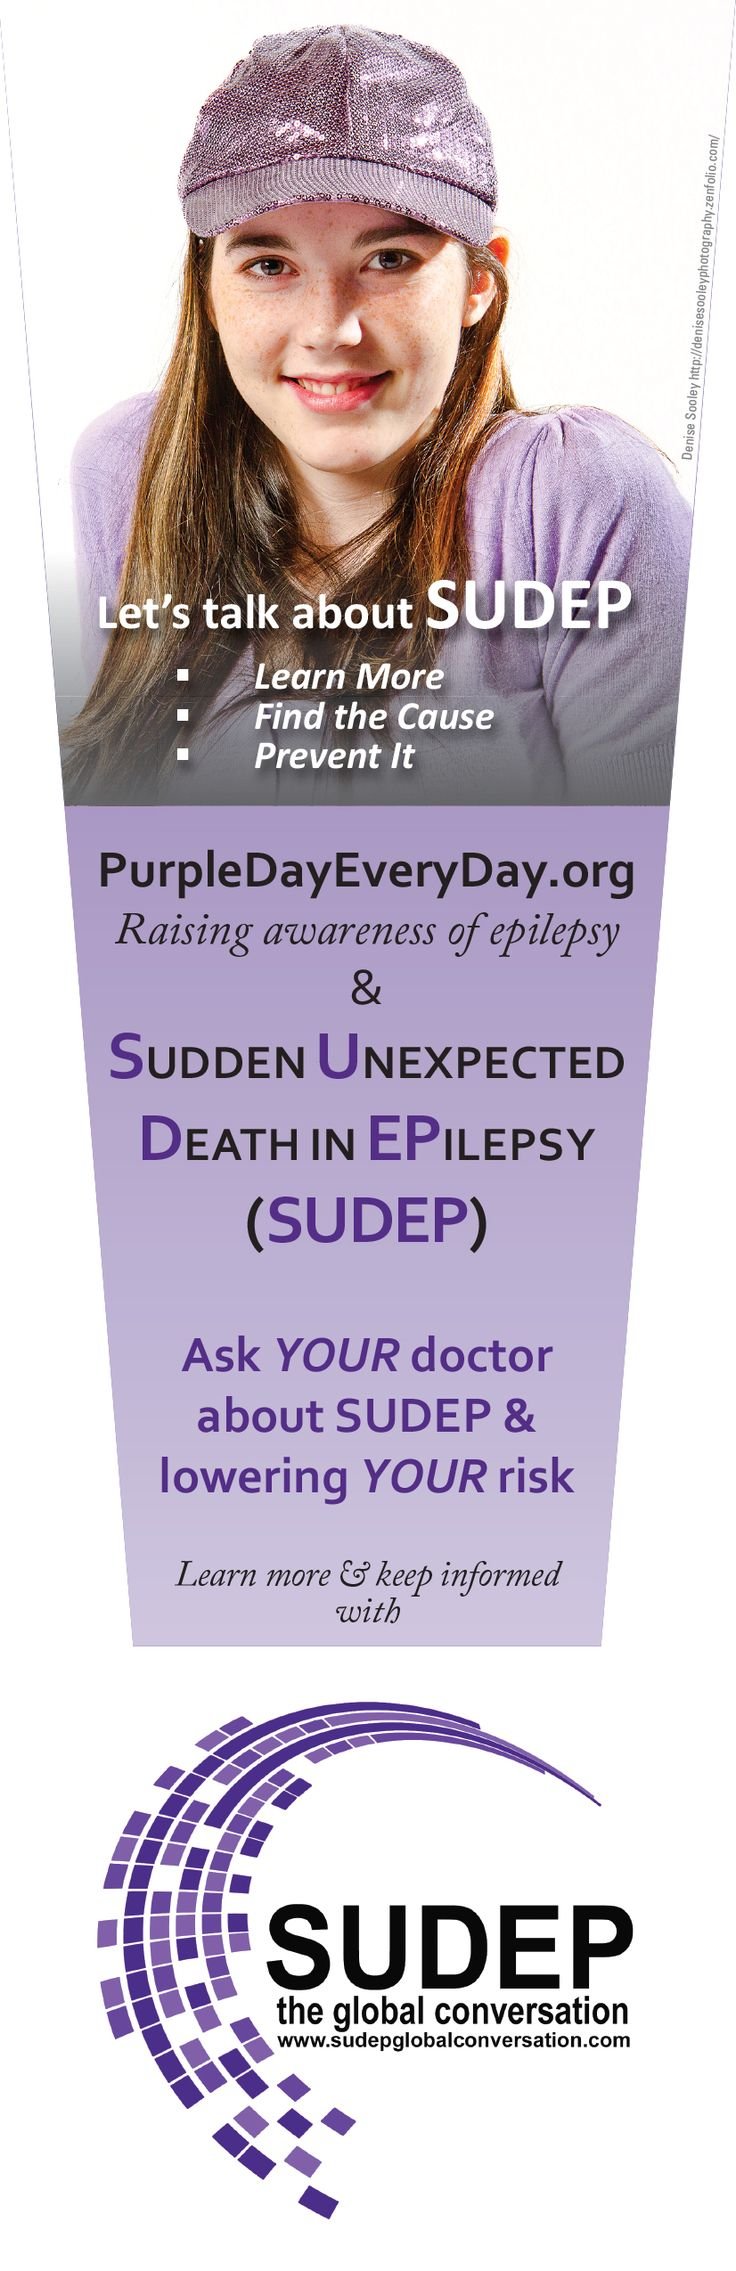 New Purple Day bookmark re SUDEP